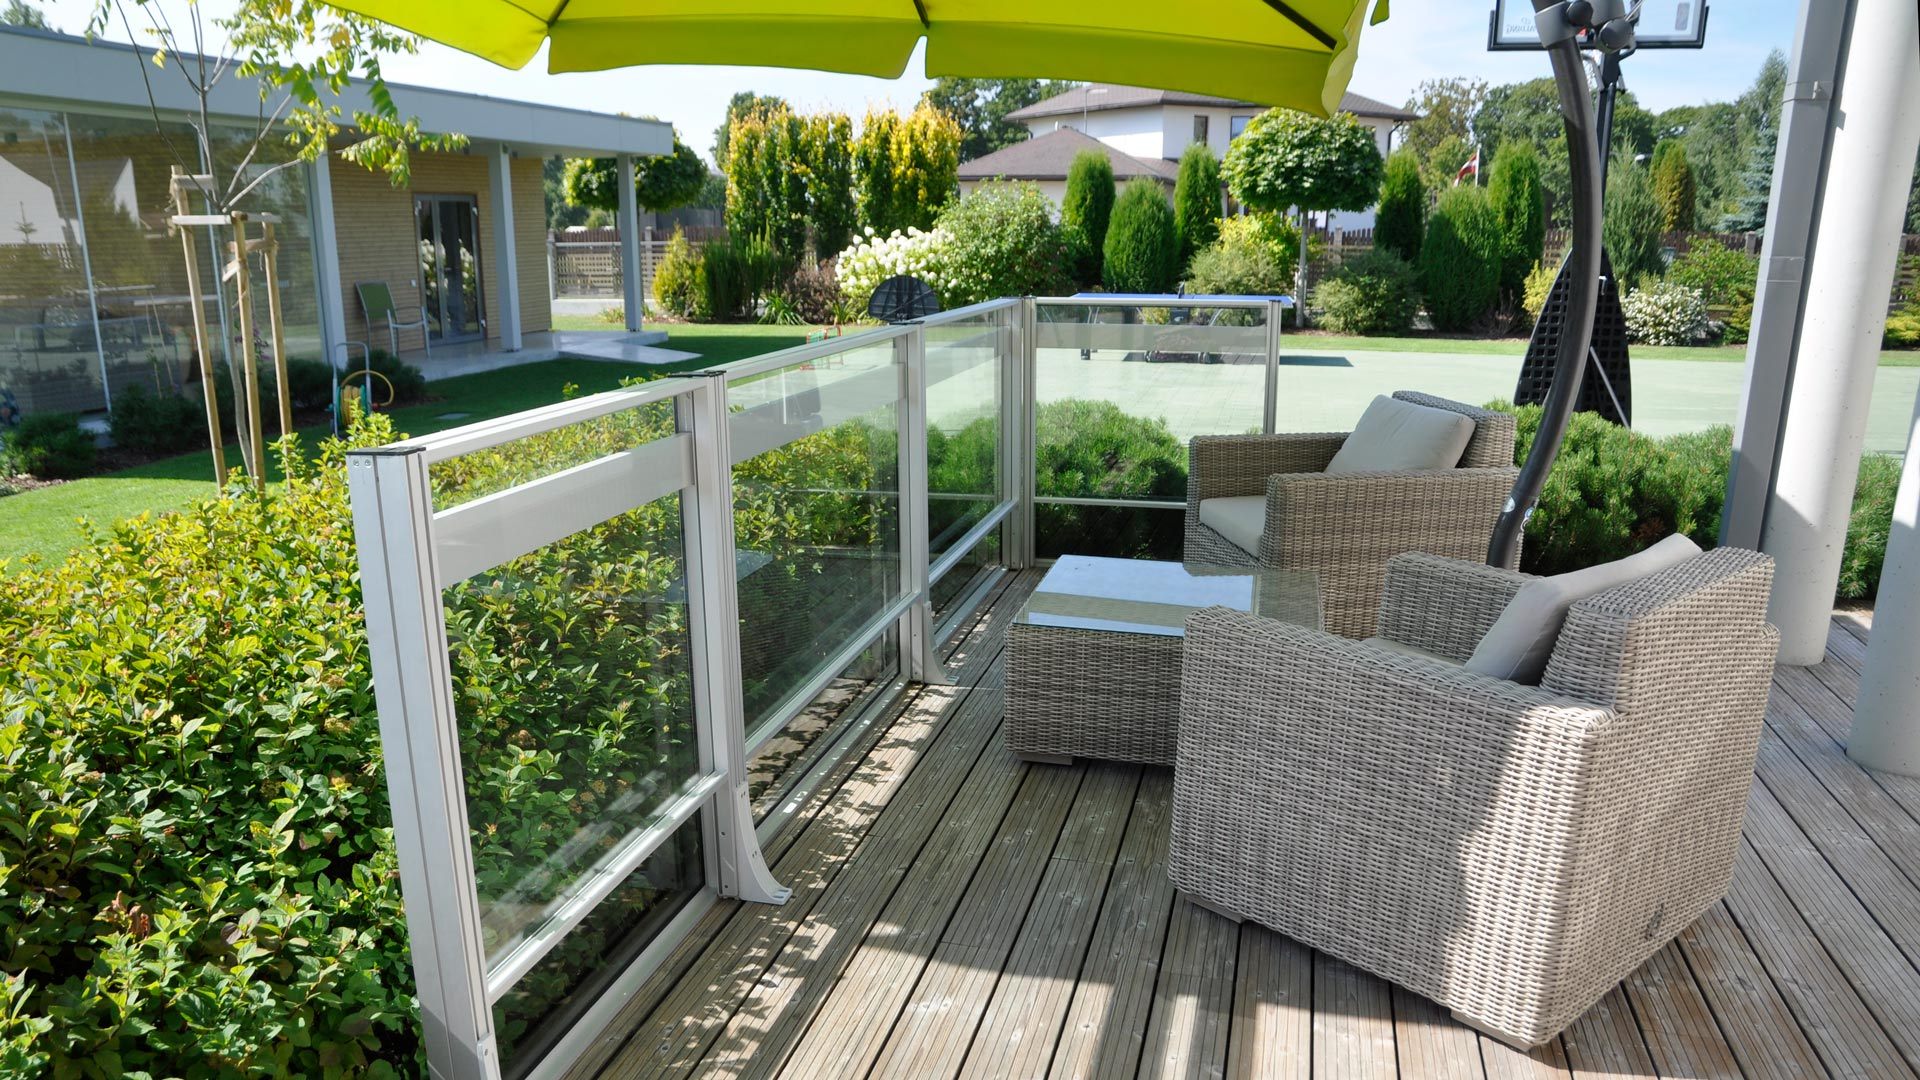 Wind railings – comfort and protection from gusts of the wind